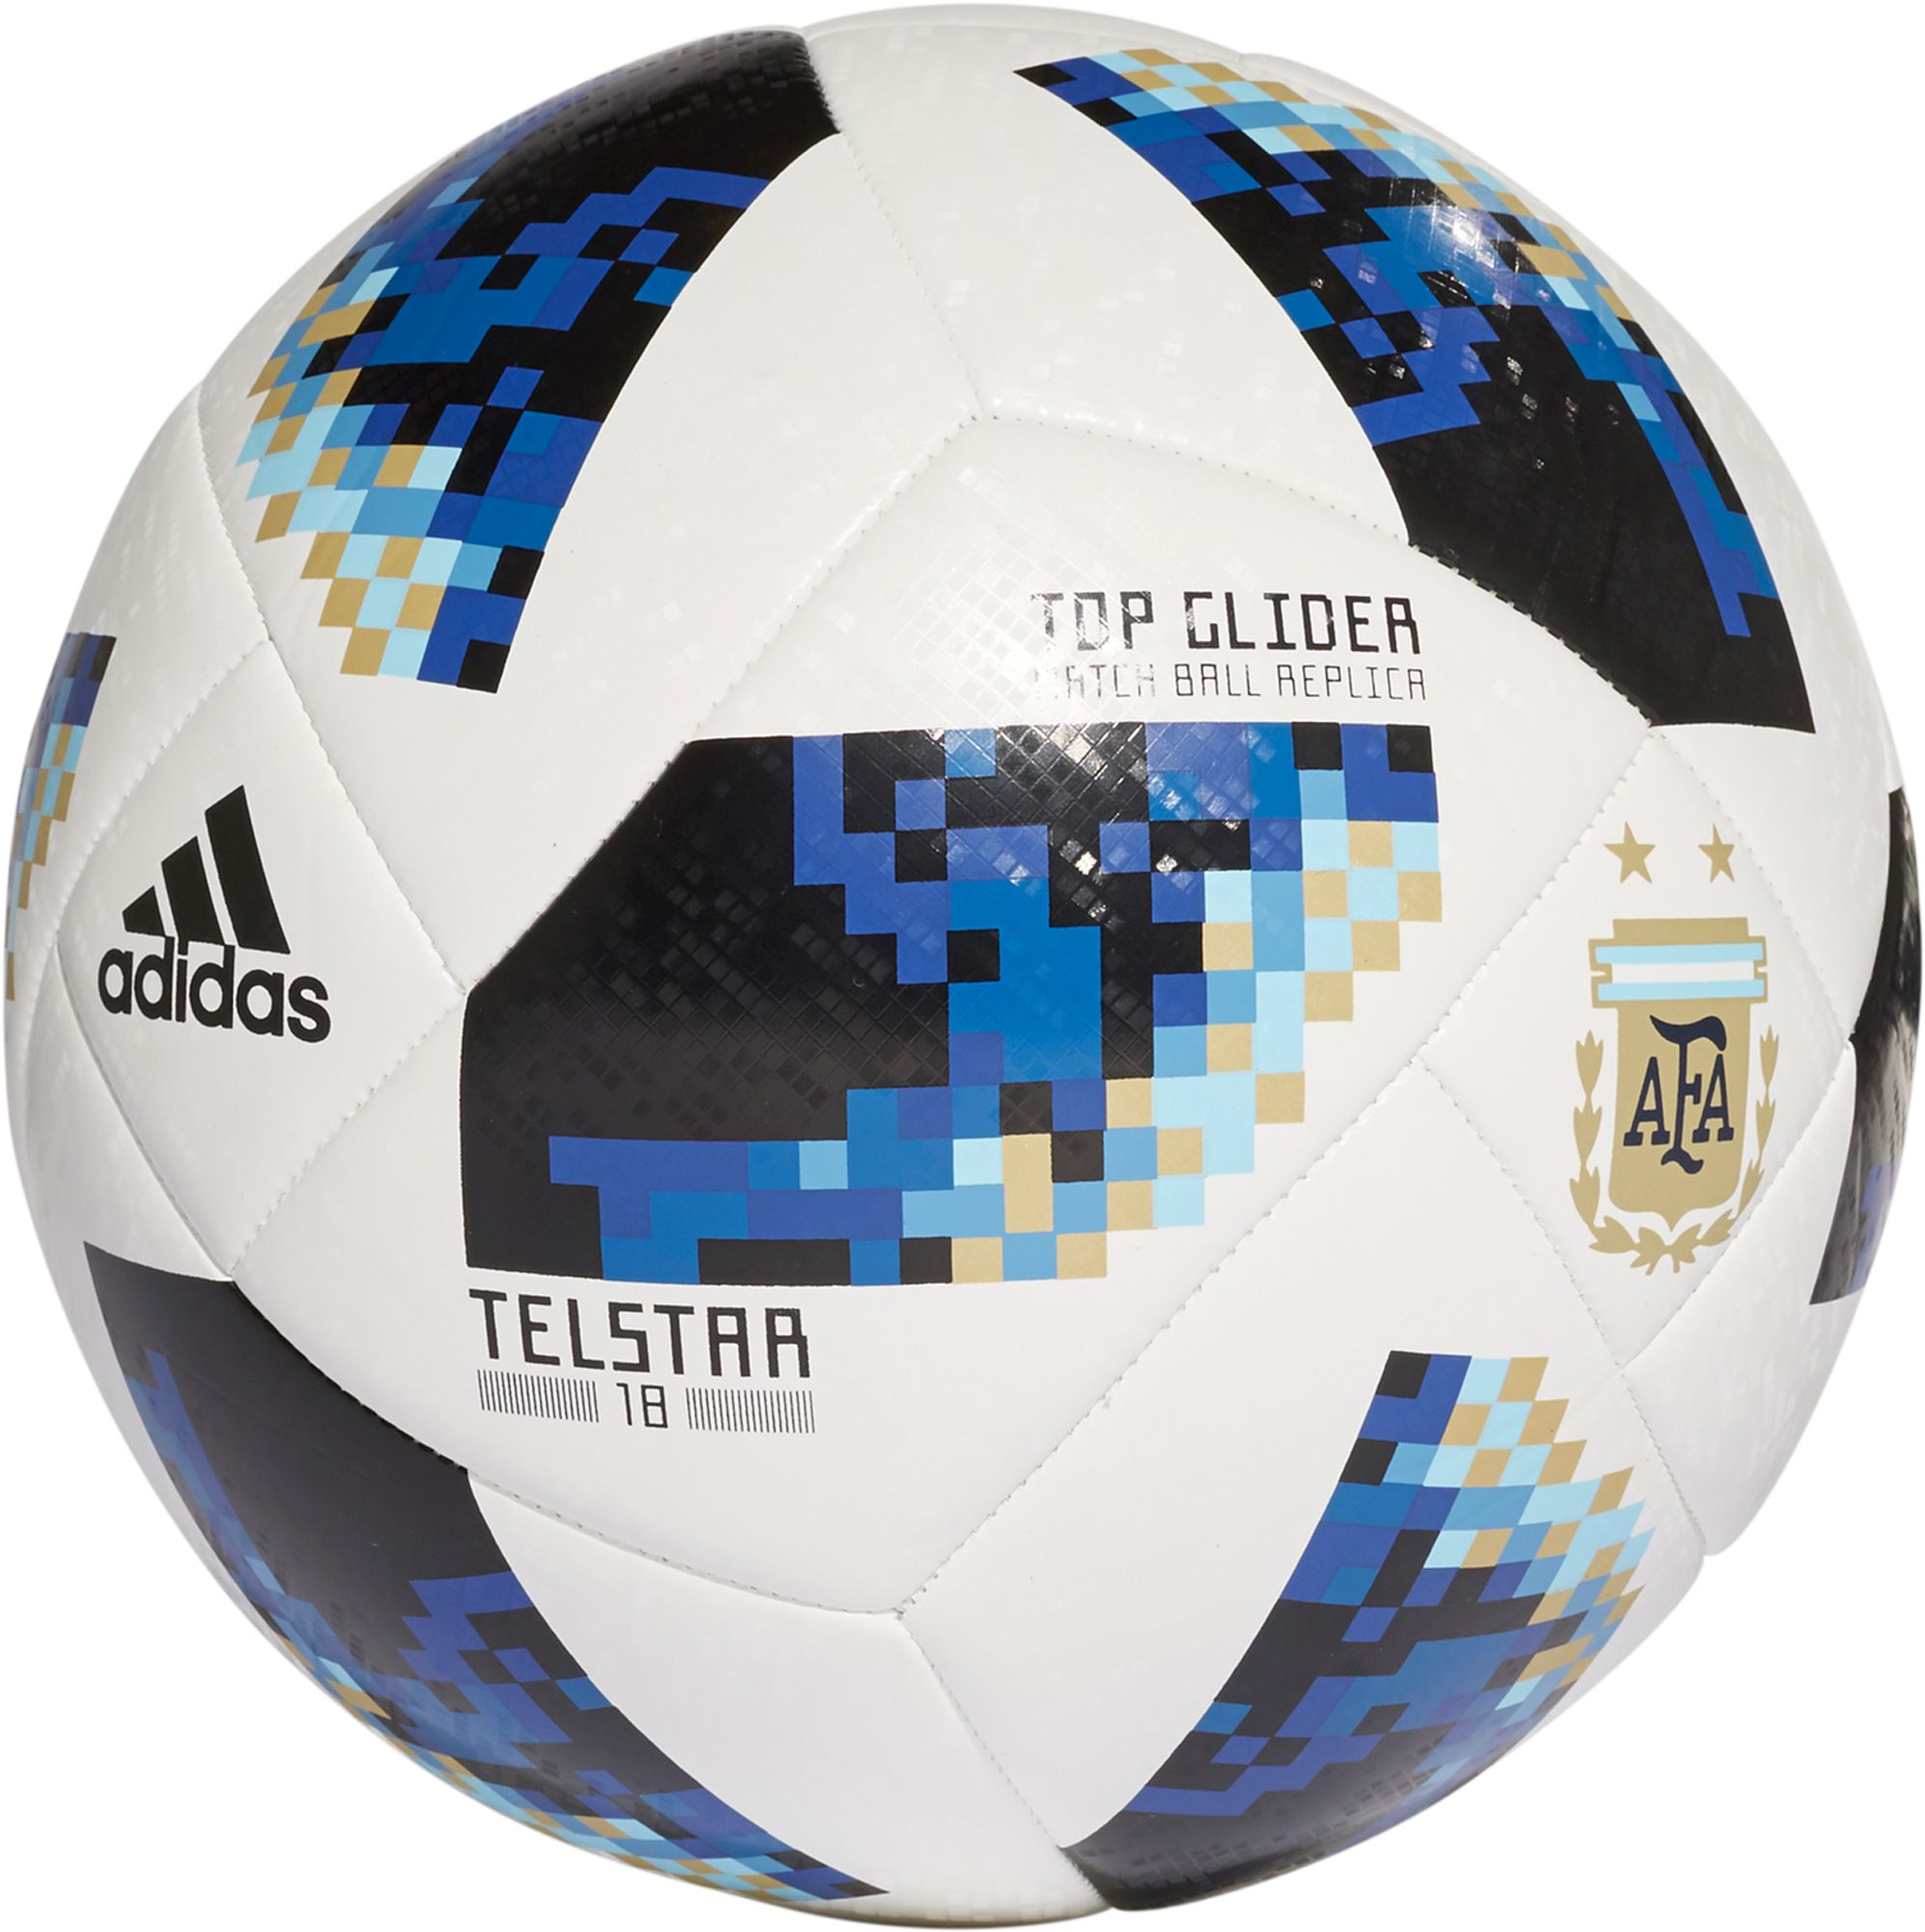 f0038fedb 2018 FIFA WORLD CUP RUSSIA OFFICIAL BALL - Buy best